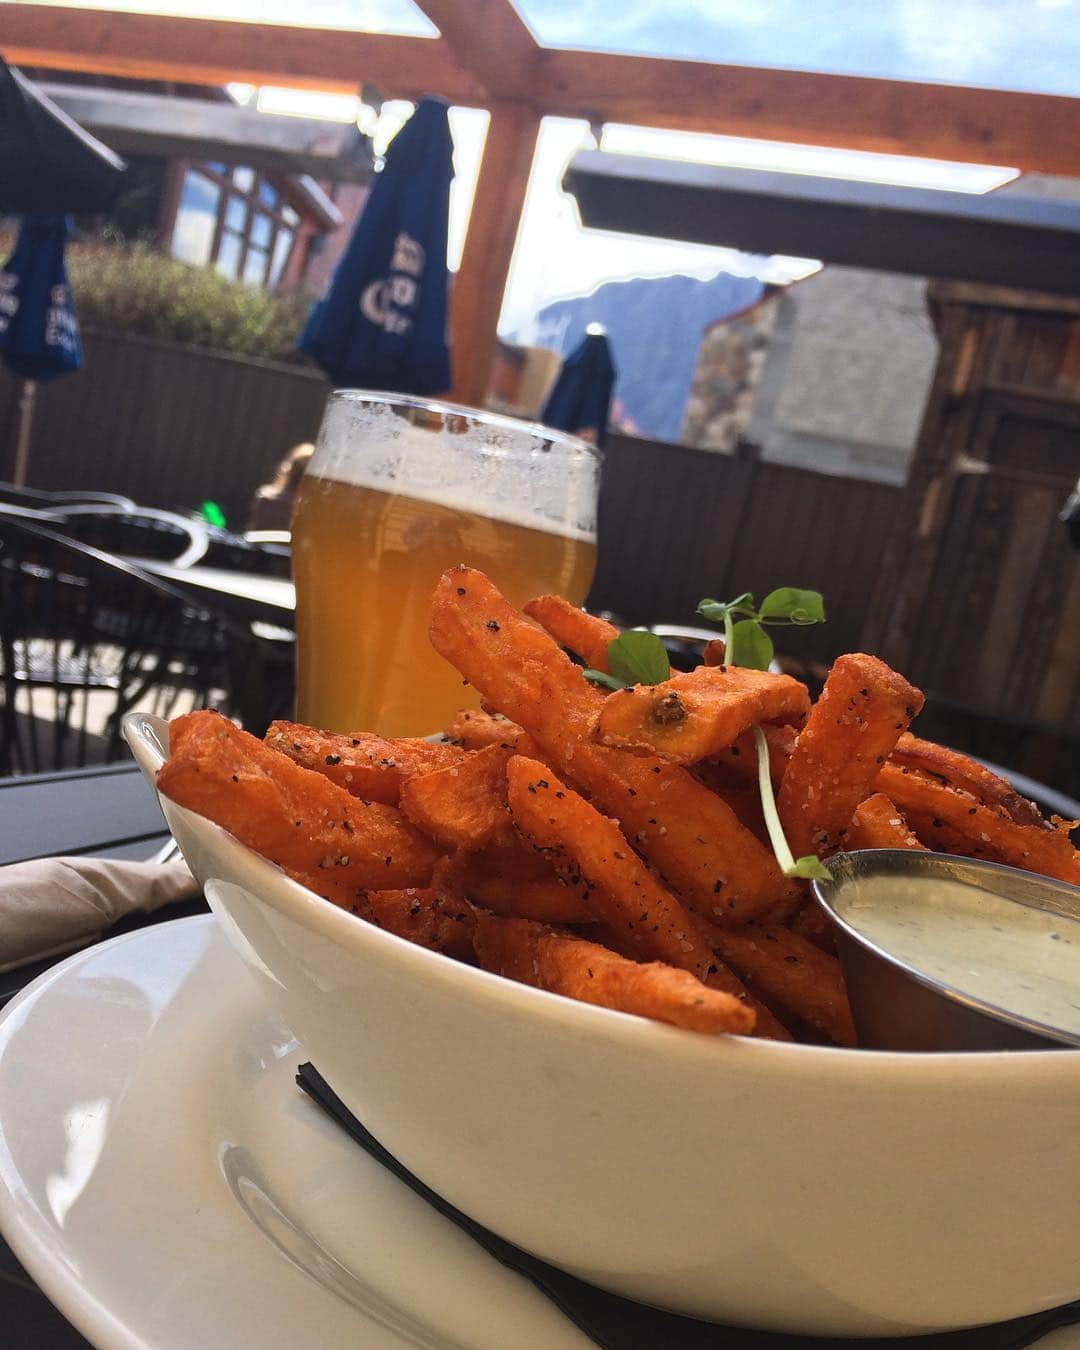 Two of my favourite things: Sweet fries and a crisp pint of @villagebrewery ISA. Nothing better to top off a day in the mountains! Thanks @tavern1883 ❤️ spring patio season! . . . . . #eveningsout #guidemebanff #canmorealberta #localbrews #foodporn #refresh #alfresco #getoutside #goodfood #beer #dinner #aprés #getinmybelly